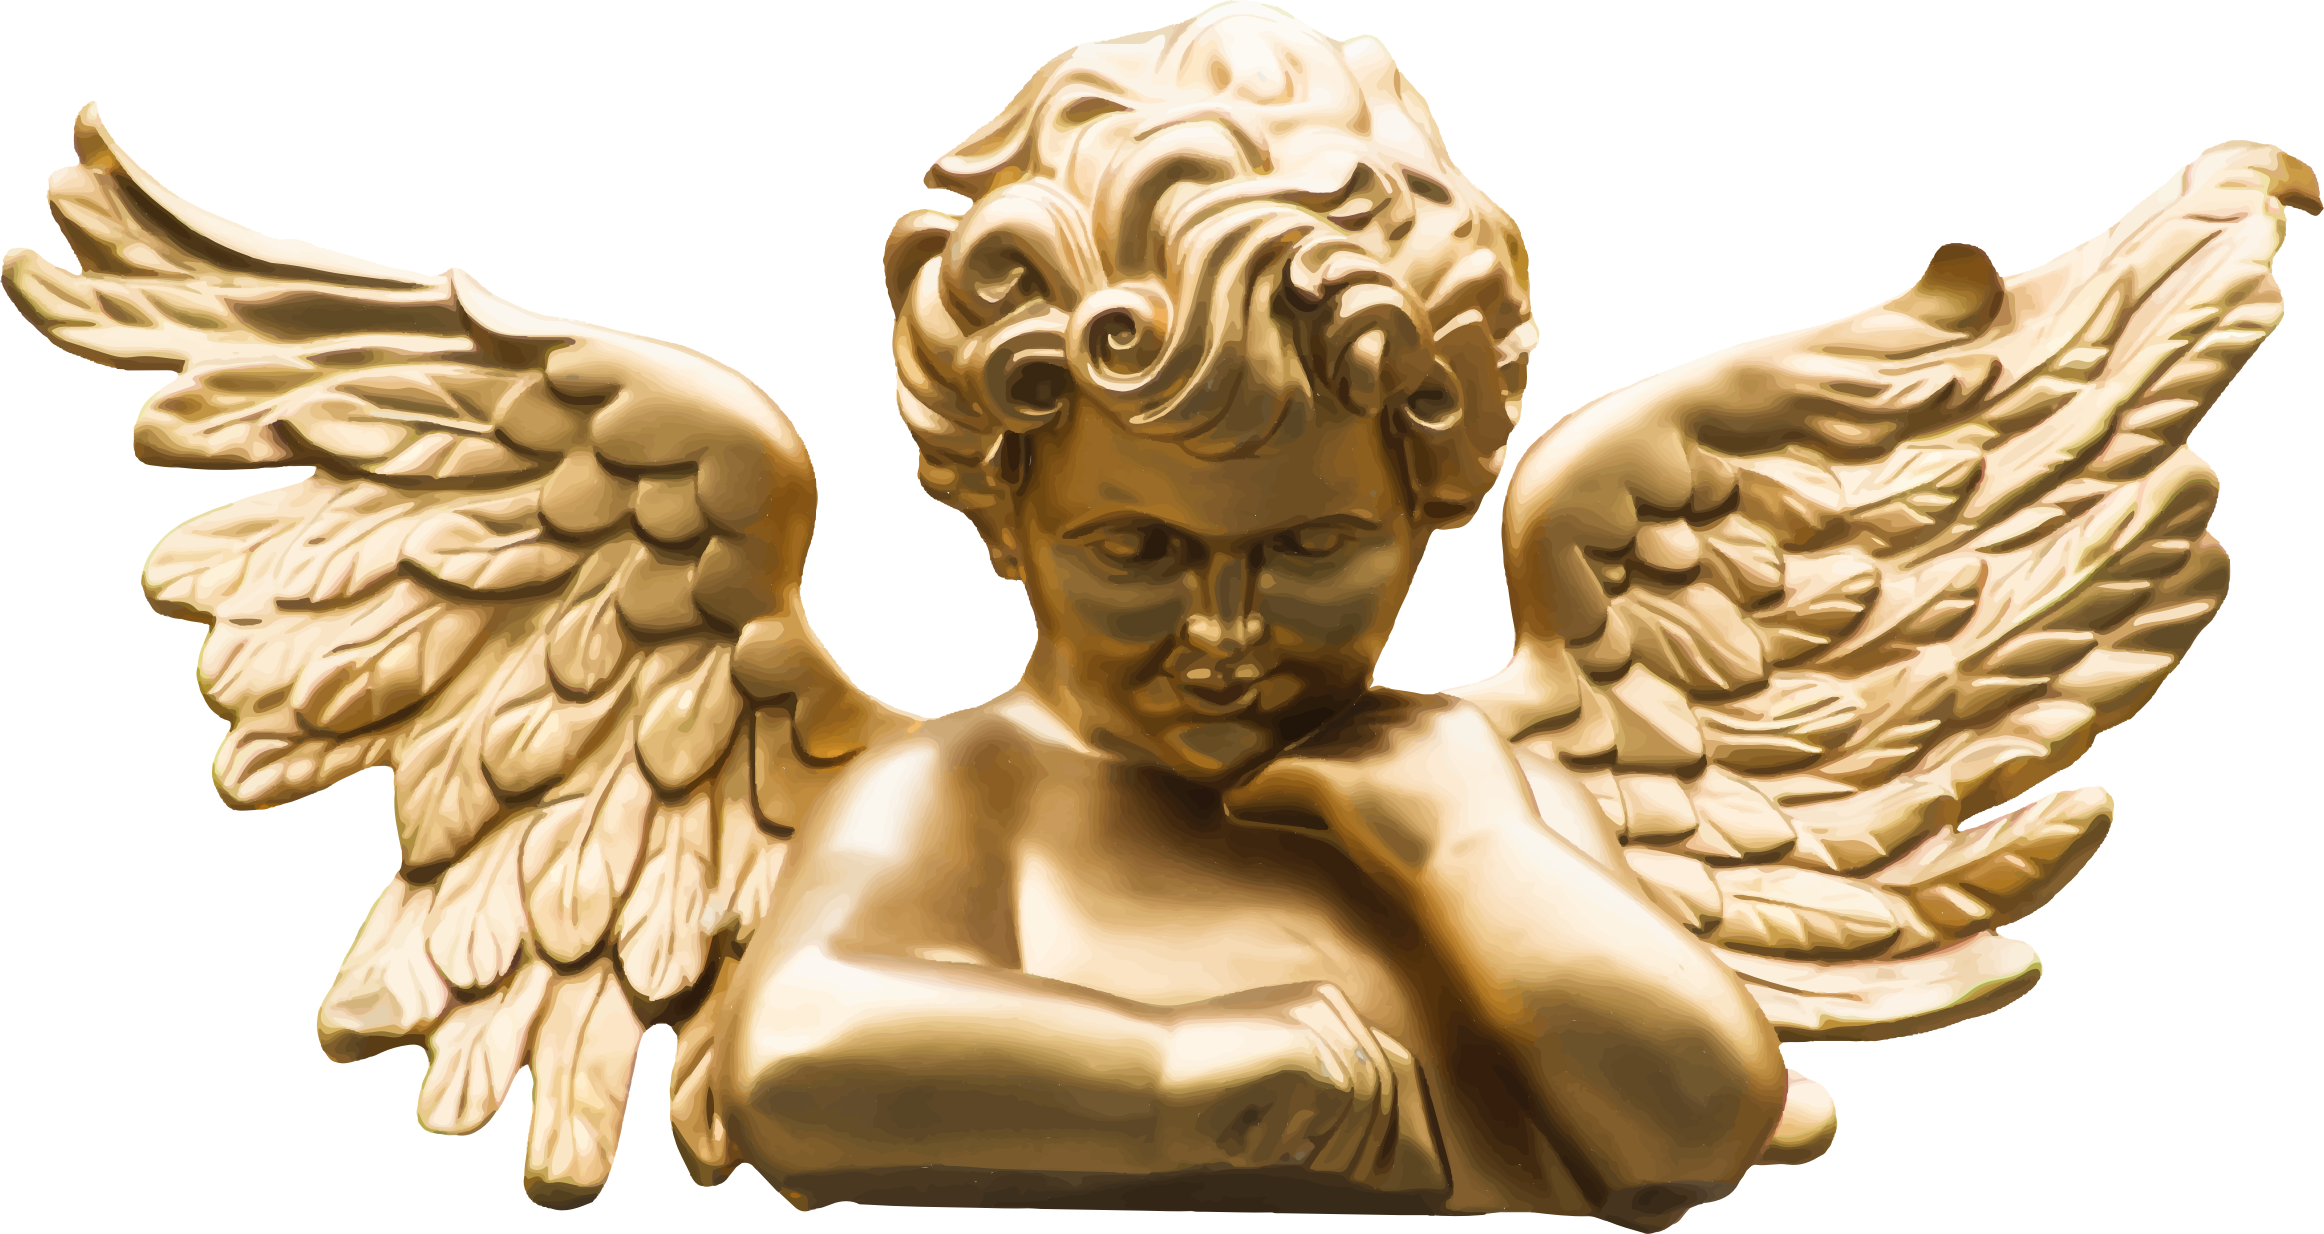 Cherubim statues clipart images gallery for download MyReal 2324x1234